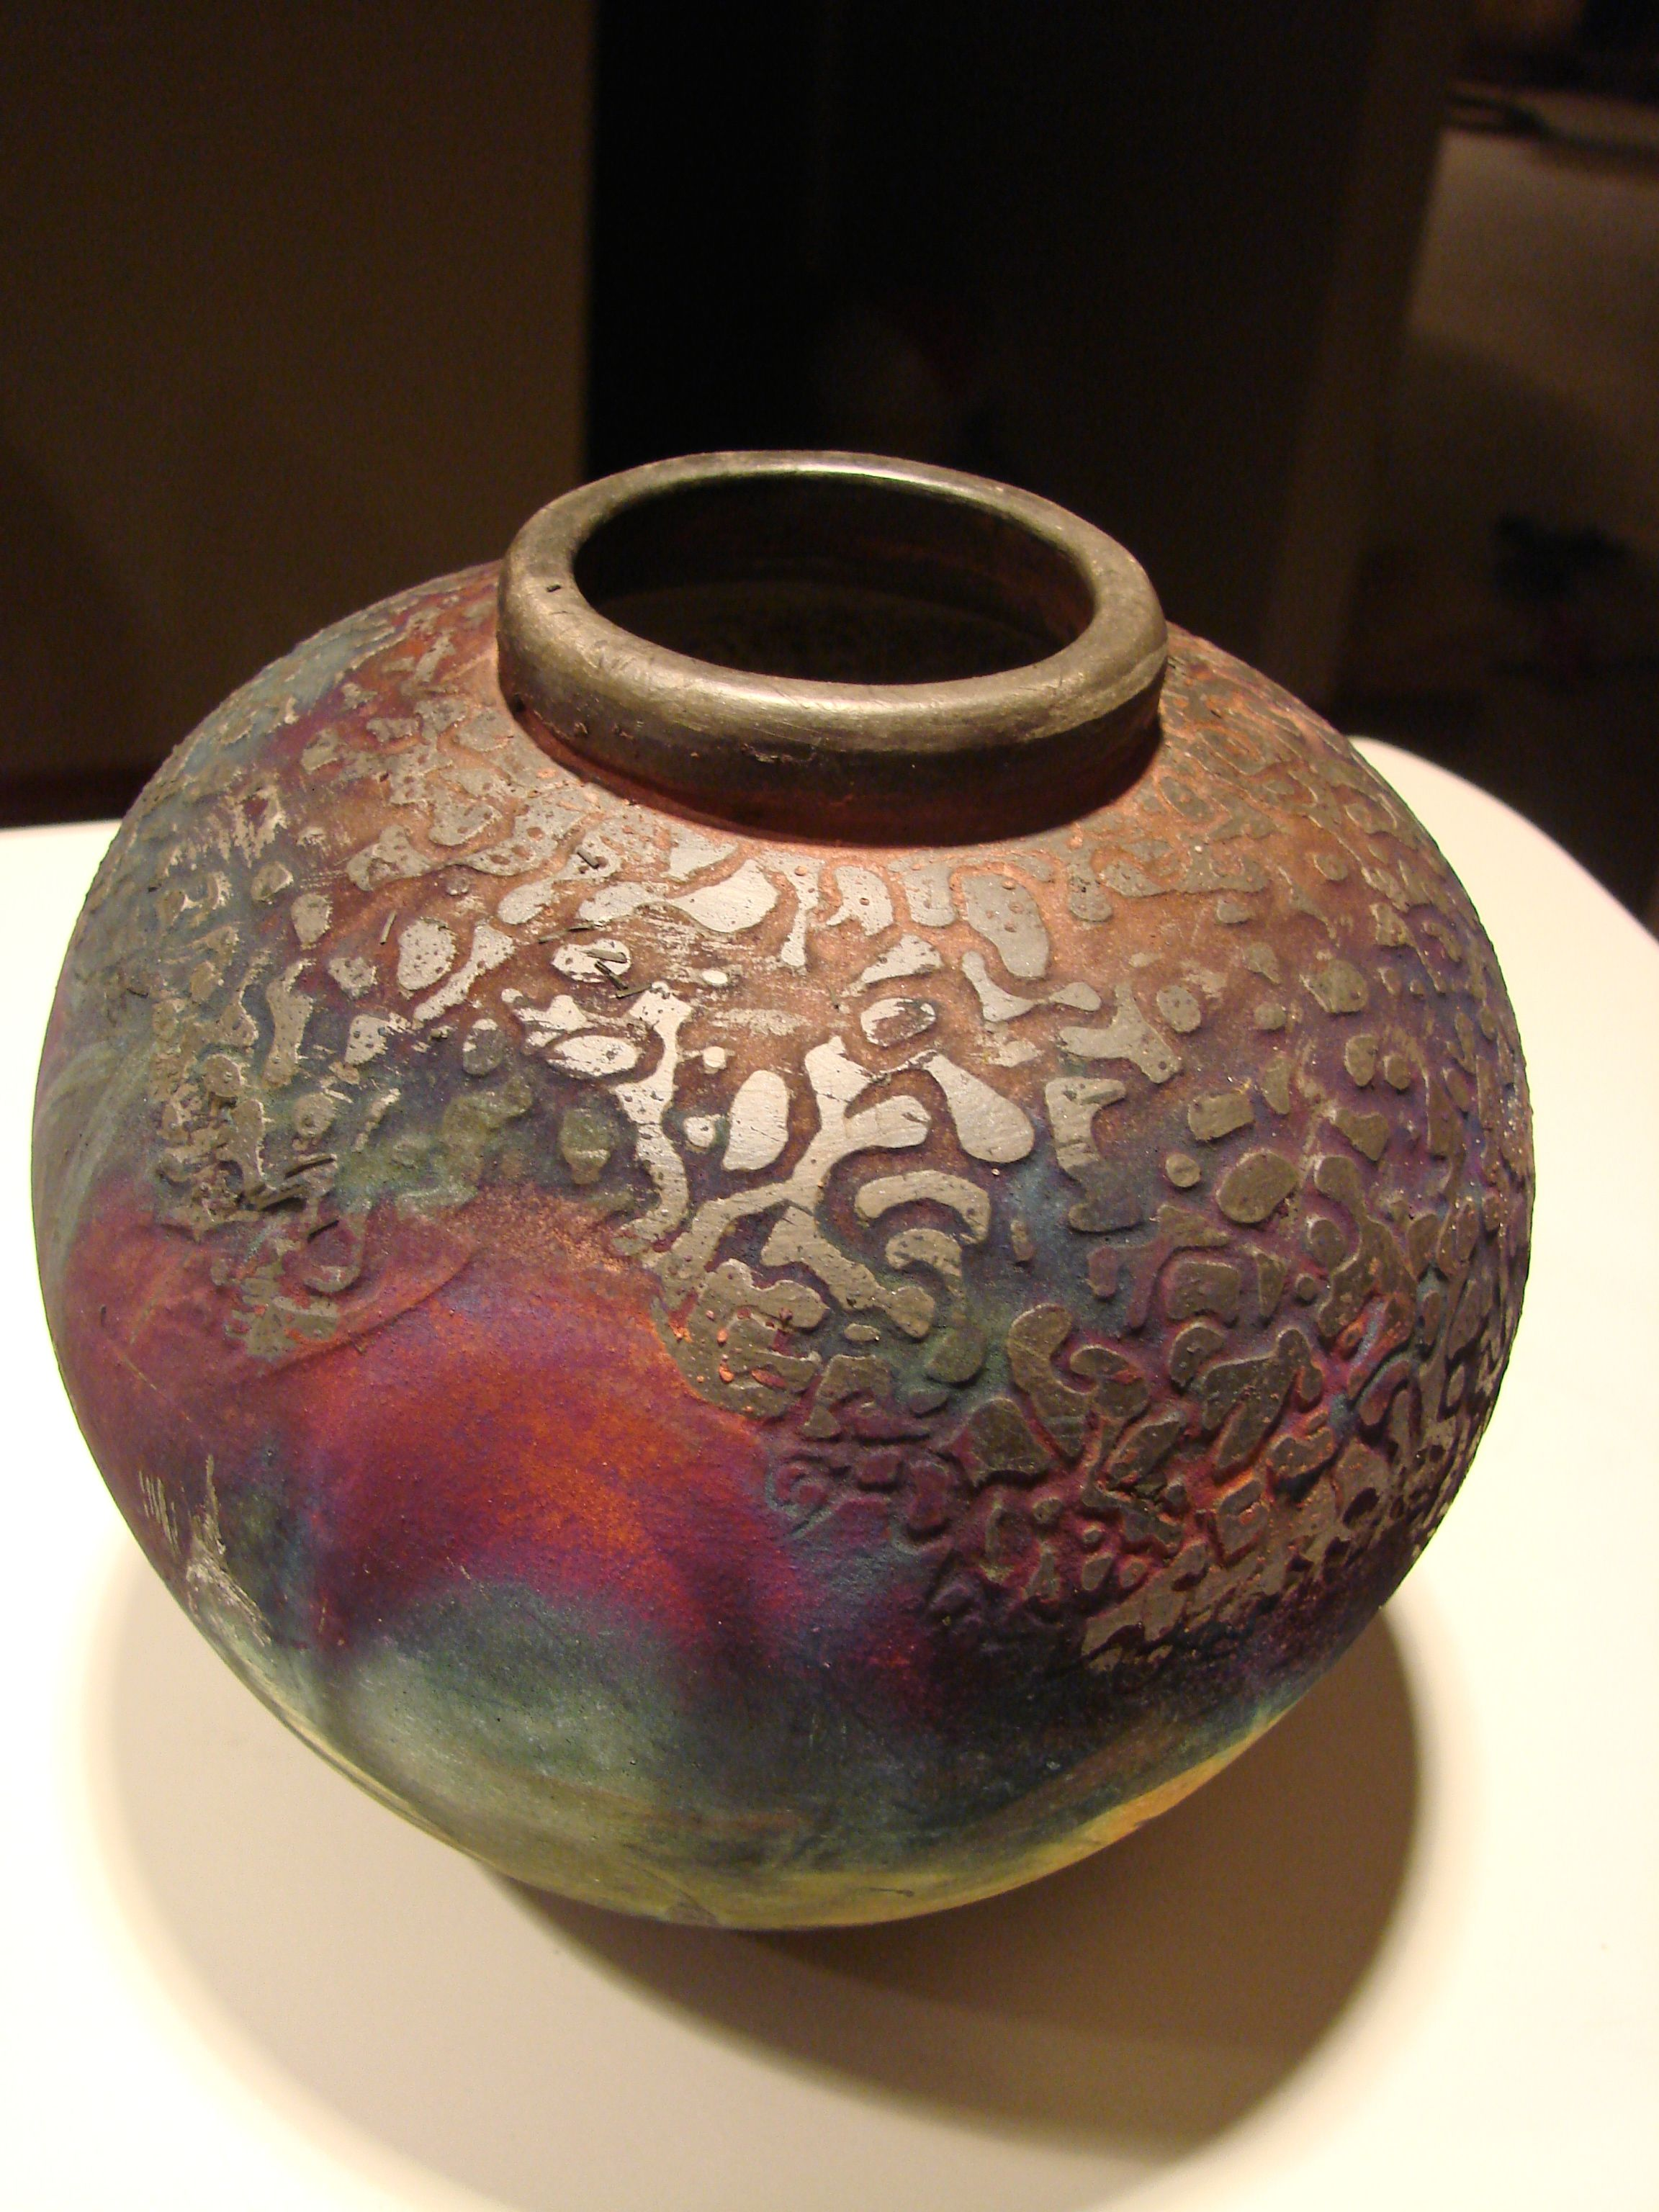 Unique Flower Vases Come See Joe Clark 39s Unique Textured Raku Pottery In Our